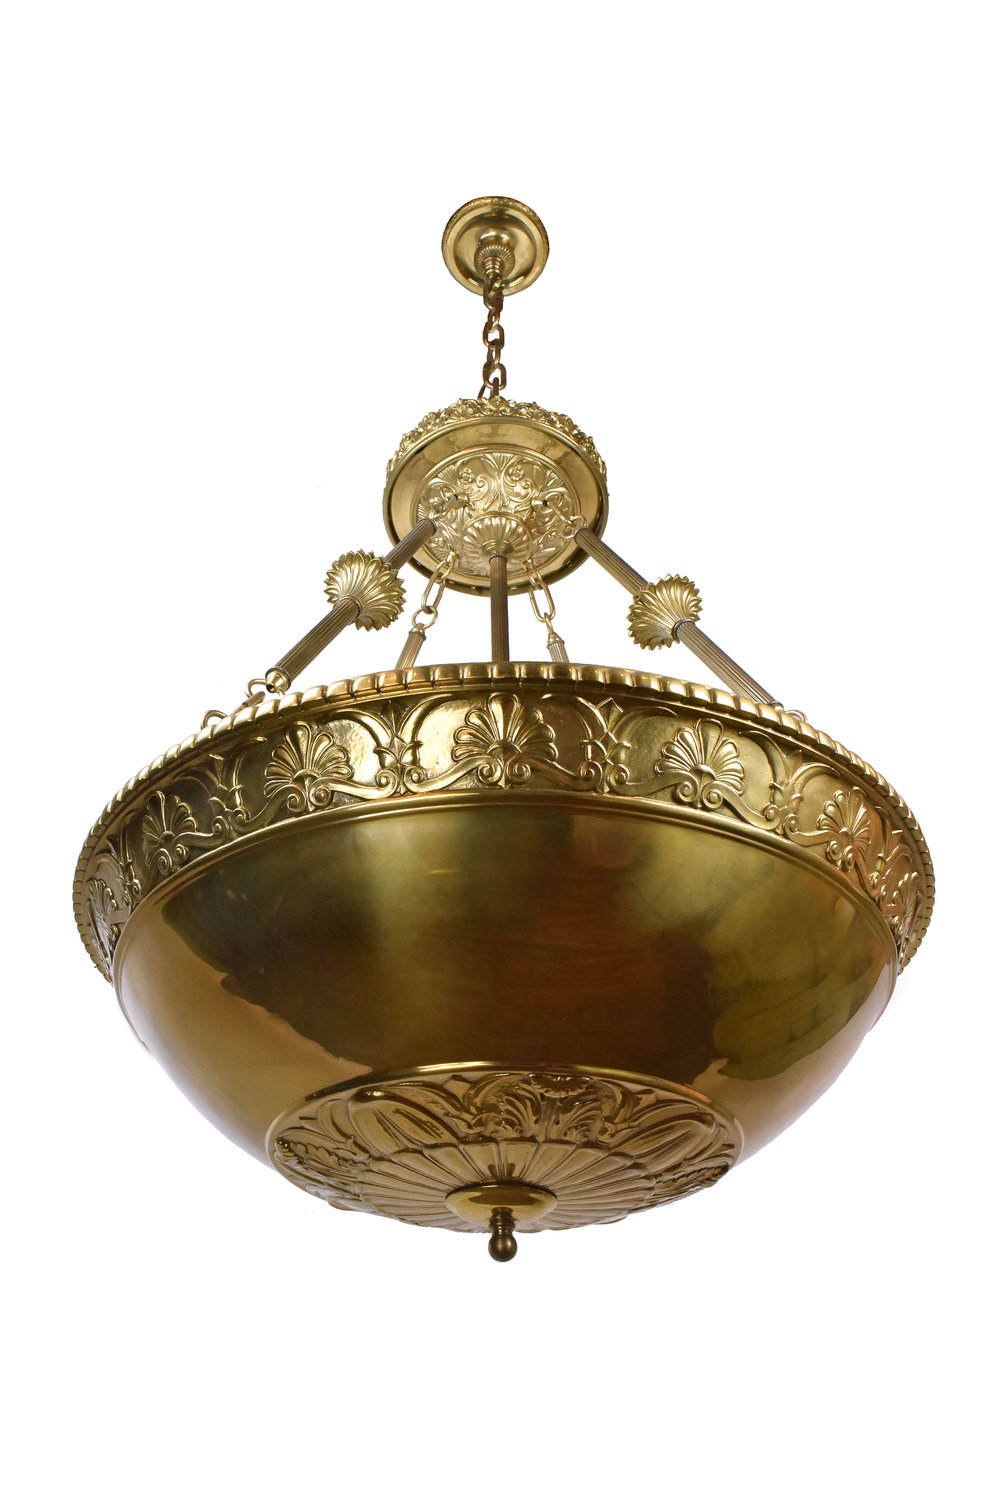 47132-cast-brass-bowl-chandelier-lower-angle.jpg